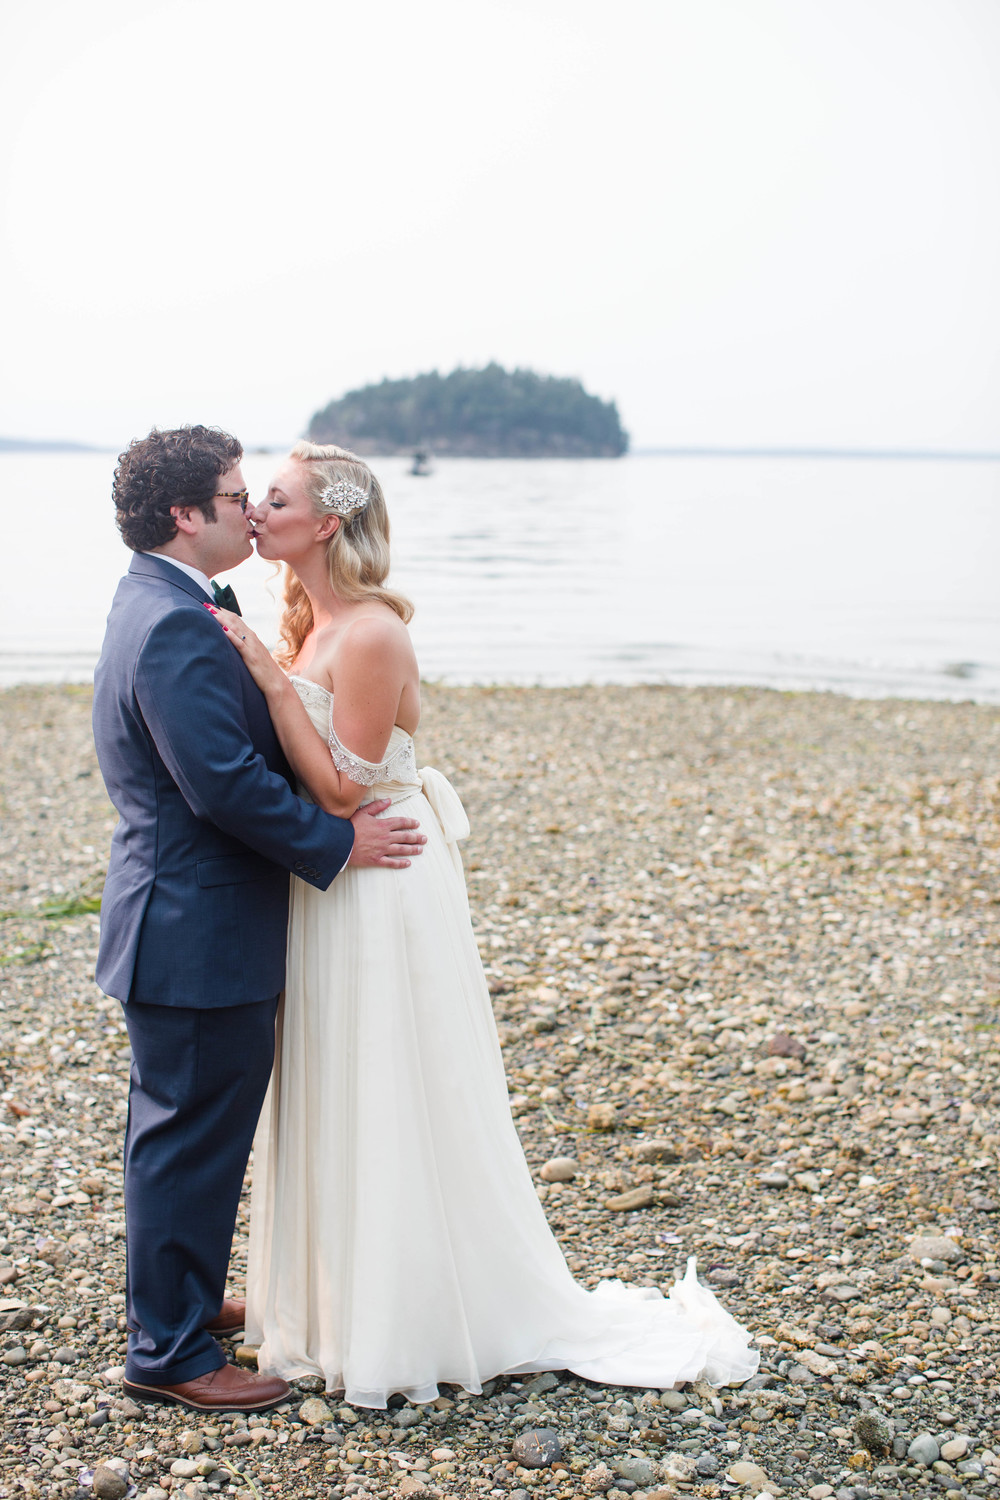 Courtney+Matt_Bellingham+Wedding_Seattle+Wedding+Photographer112.jpg